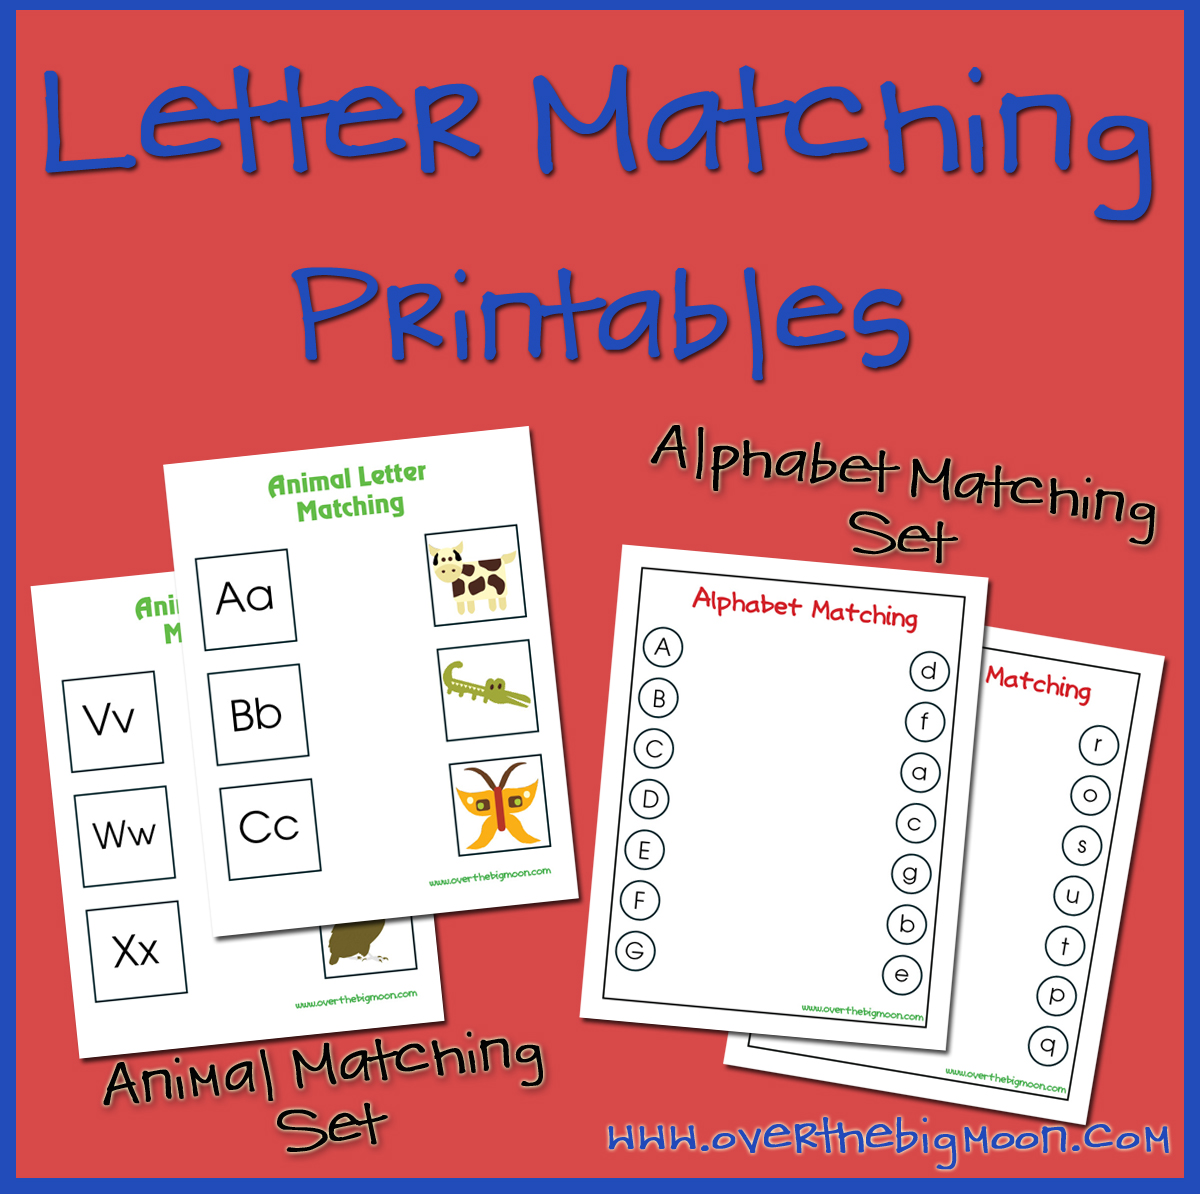 alphabet letters and matching picture print out